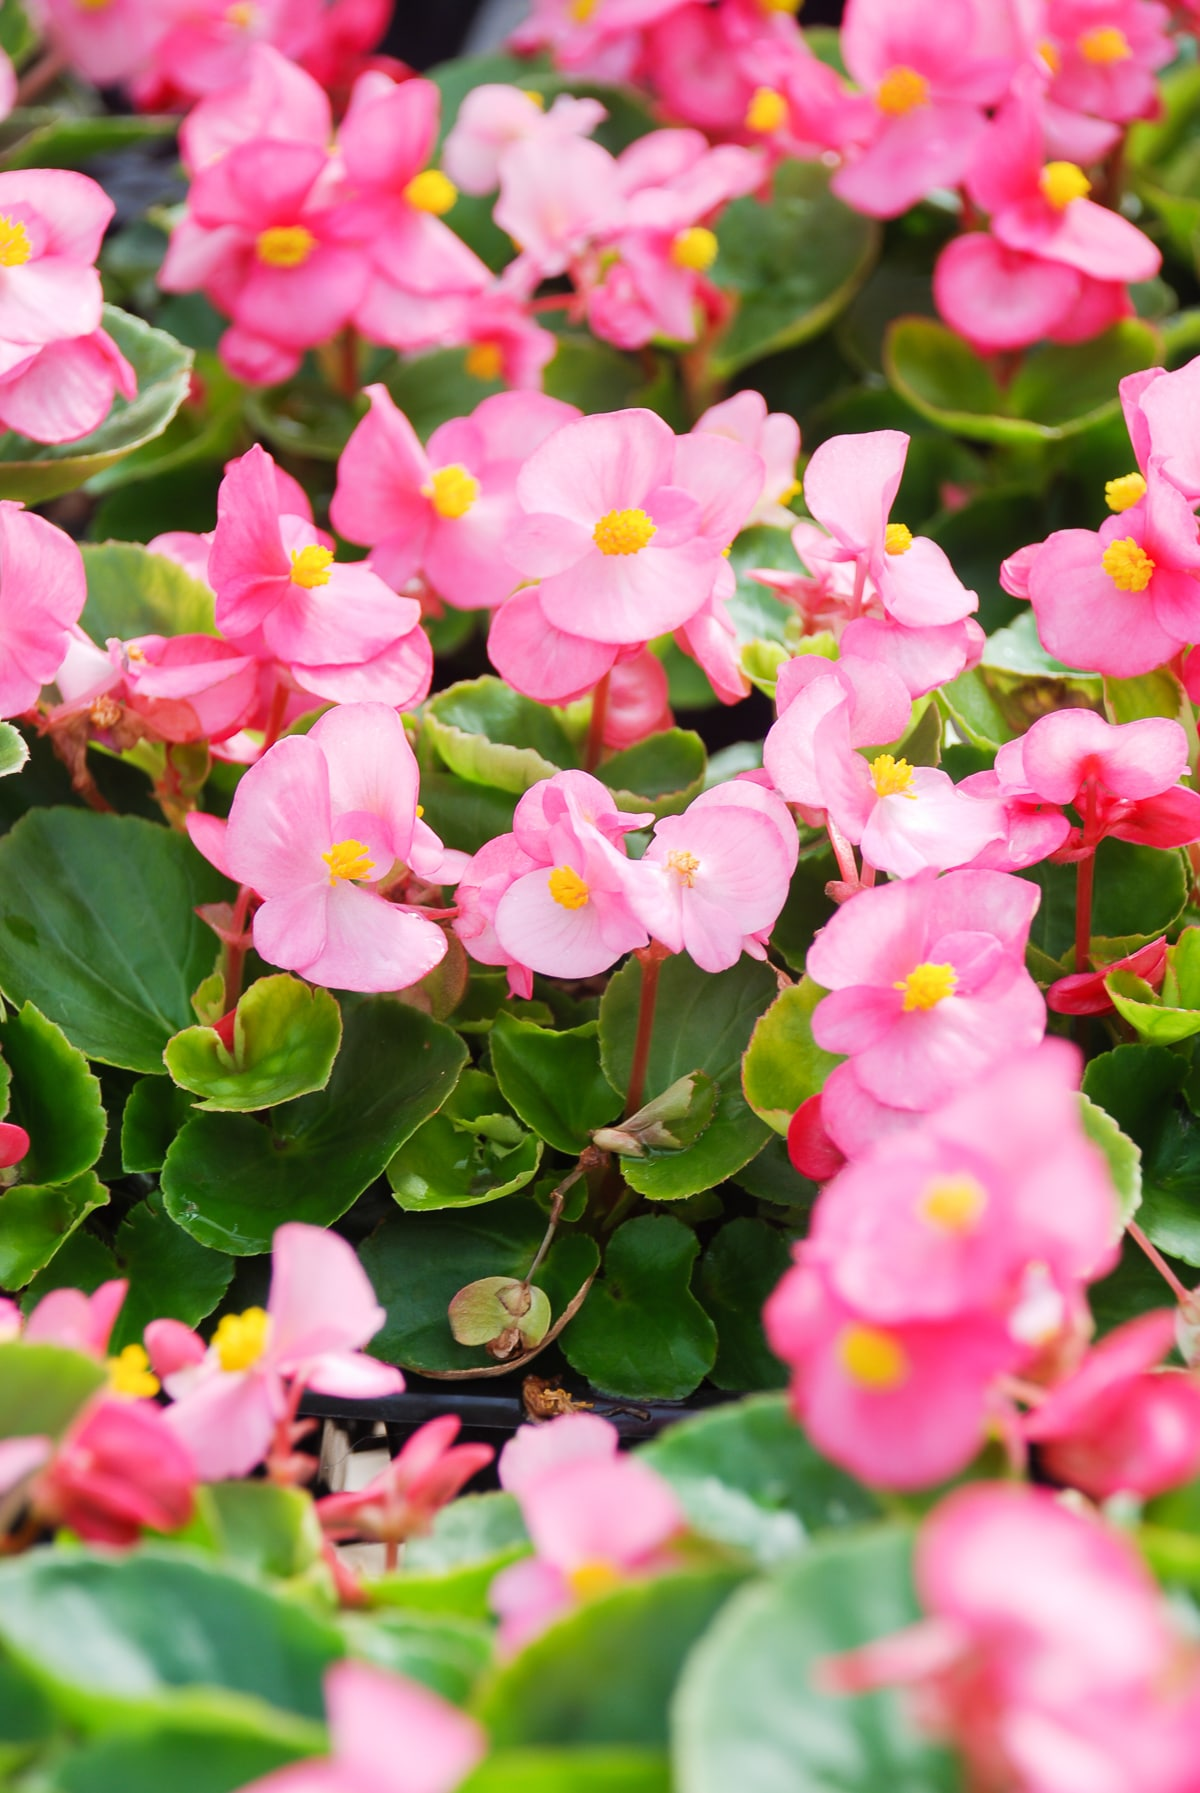 Small Bright pink  flowers with lemon yellow centres  against chartreuse green leaves.  Begonias blooming in the shade.